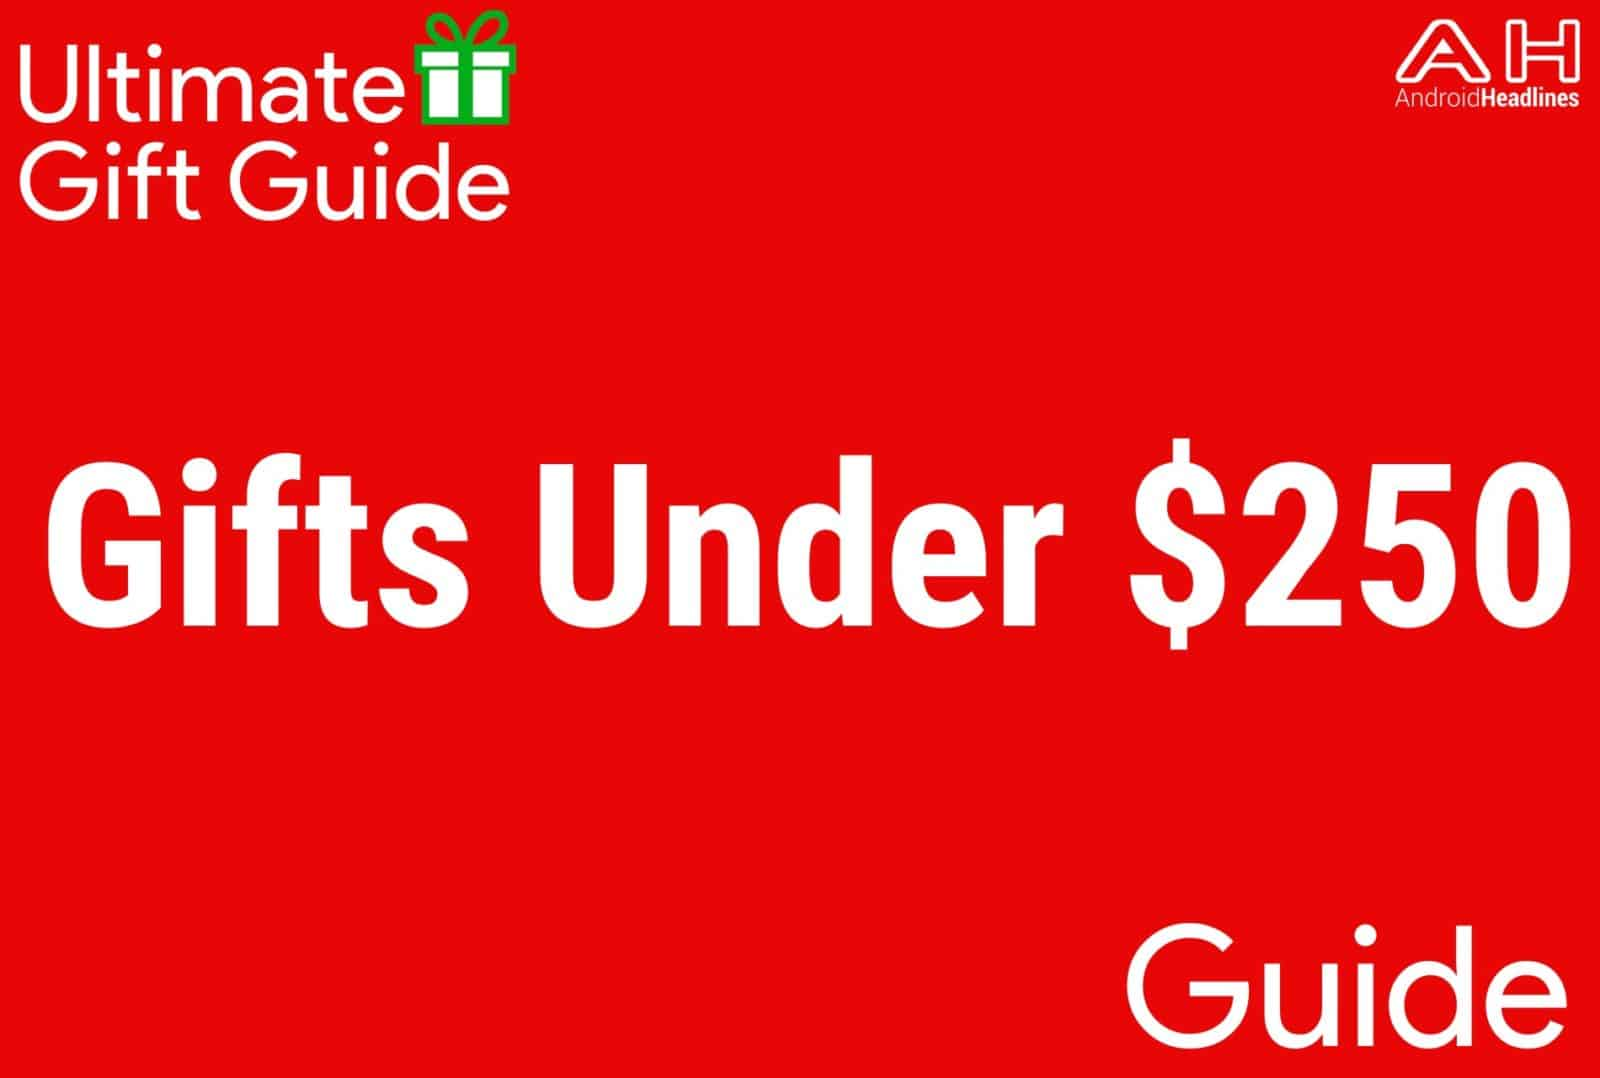 Gifts Under $250 - Gift Guide 2015